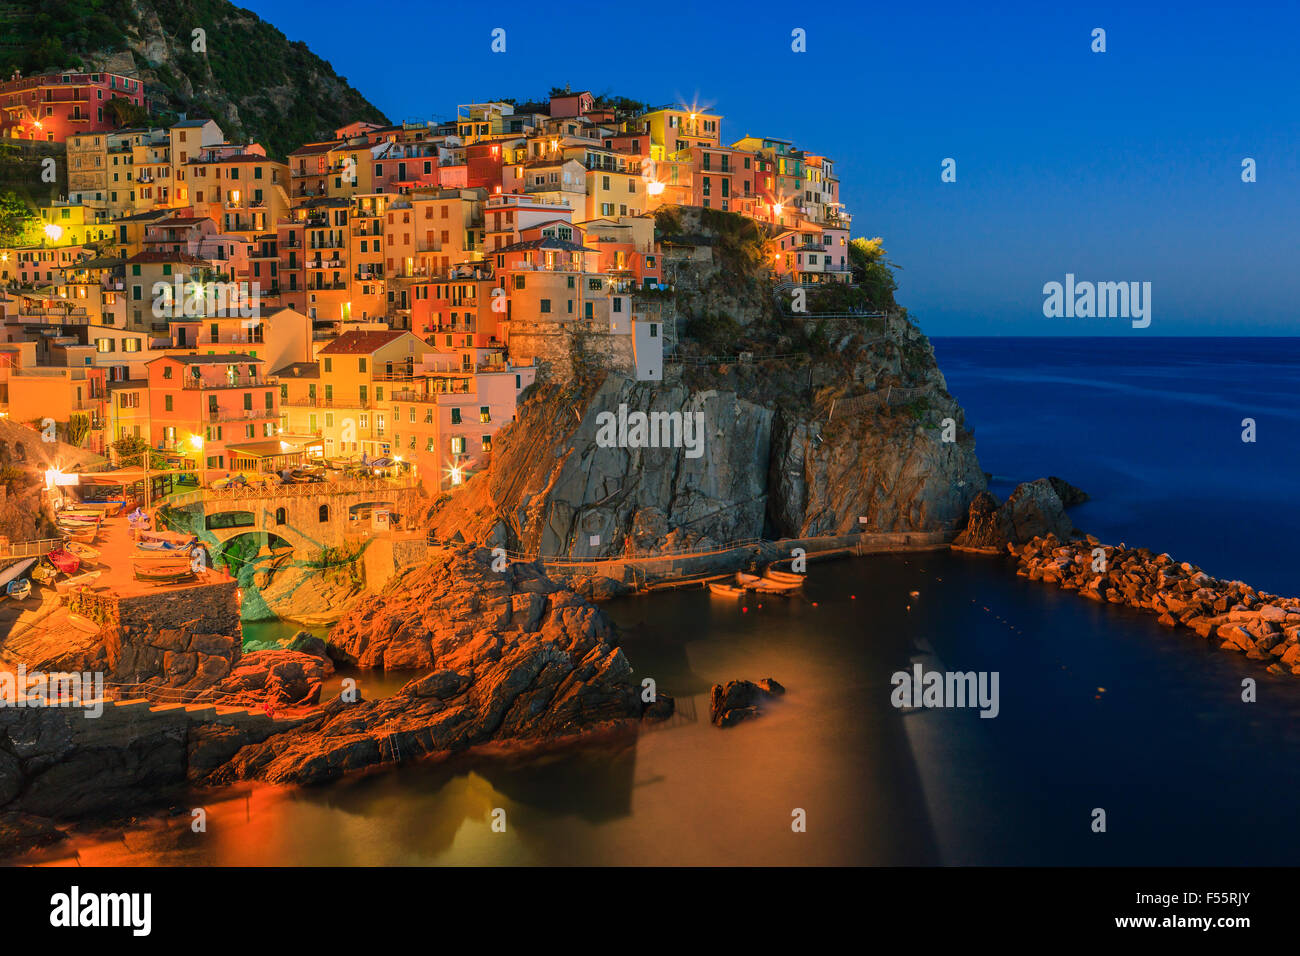 Manarola is a town and commune located in the province of La Spezia, Liguria, northwestern Italy. - Stock Image